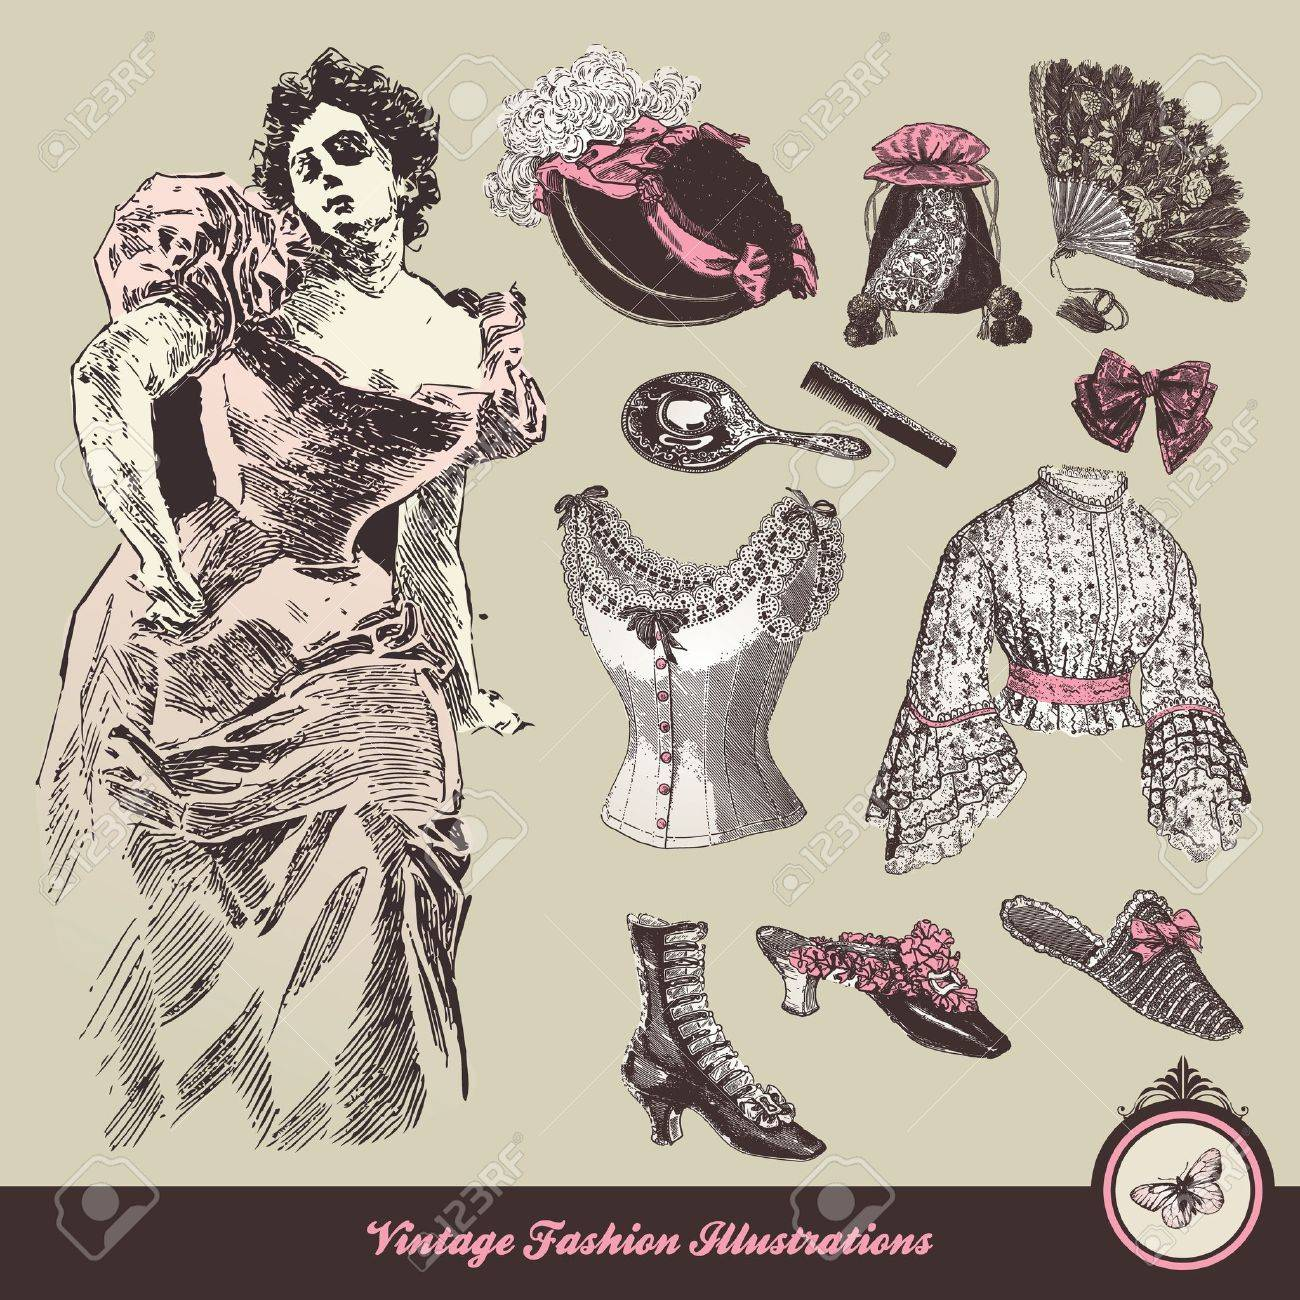 Vintage fashion - clothes and accessories collection Stock Vector - 10917860